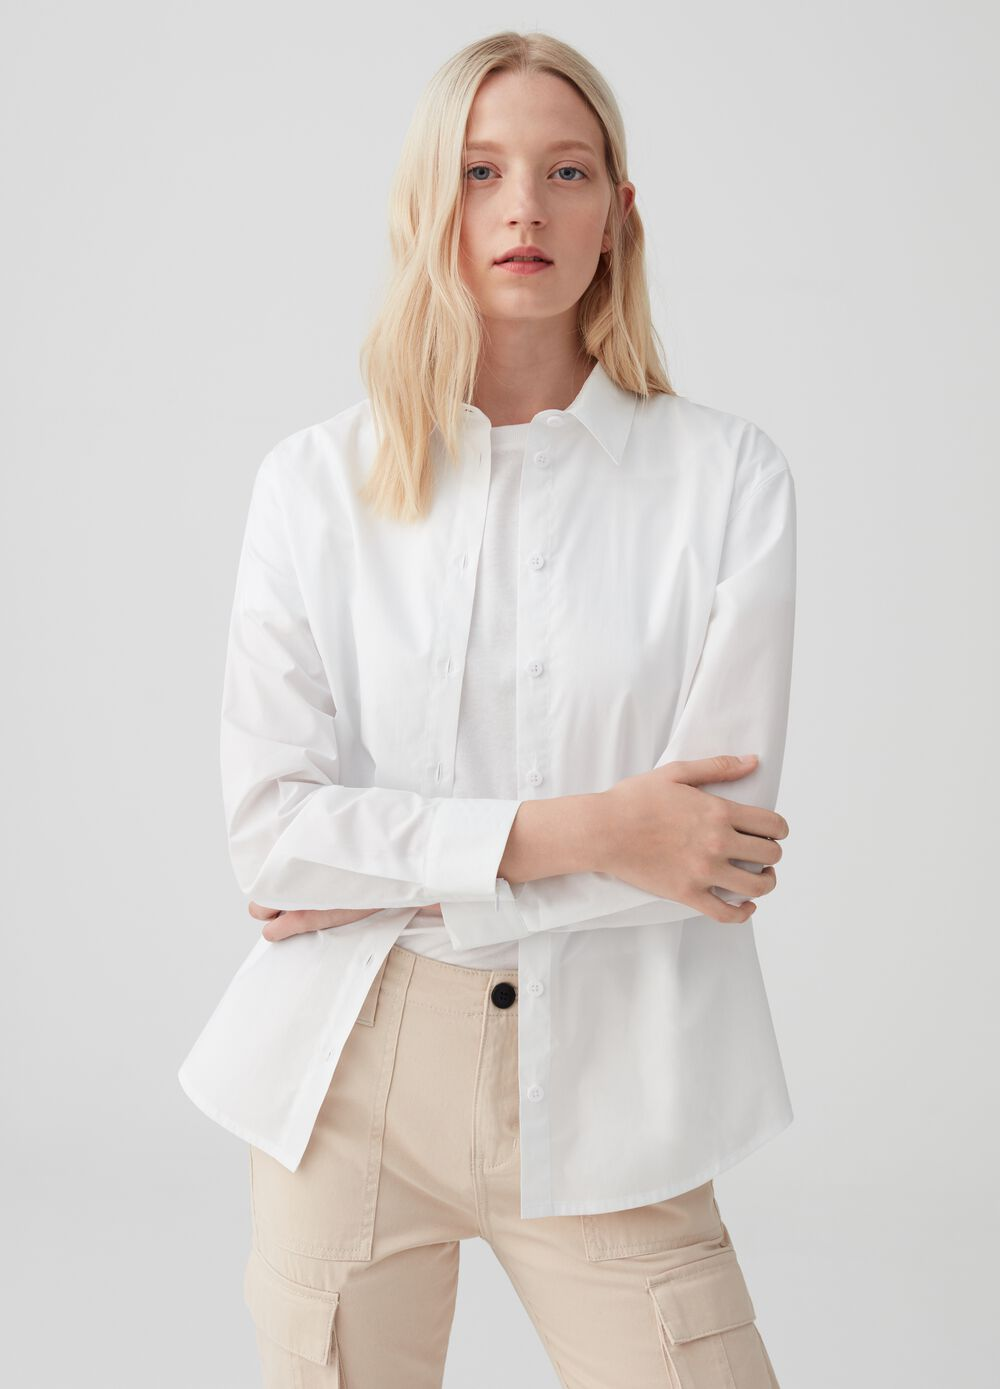 Boyfriend-fit shirt with zips on cuffs